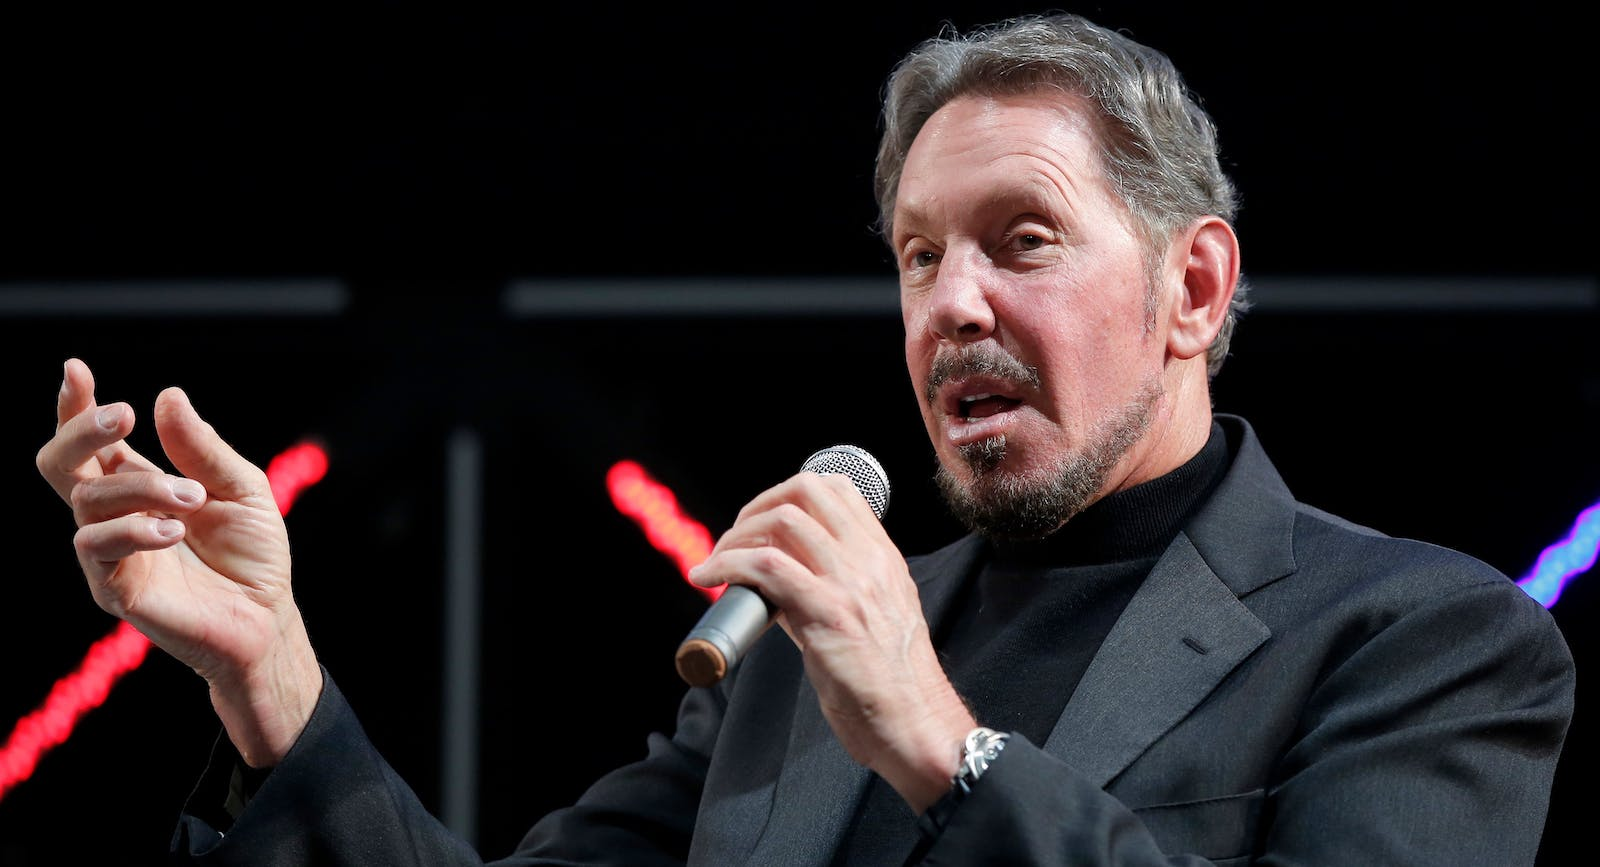 Oracle chairman Larry Ellison. Photo by Bloomberg